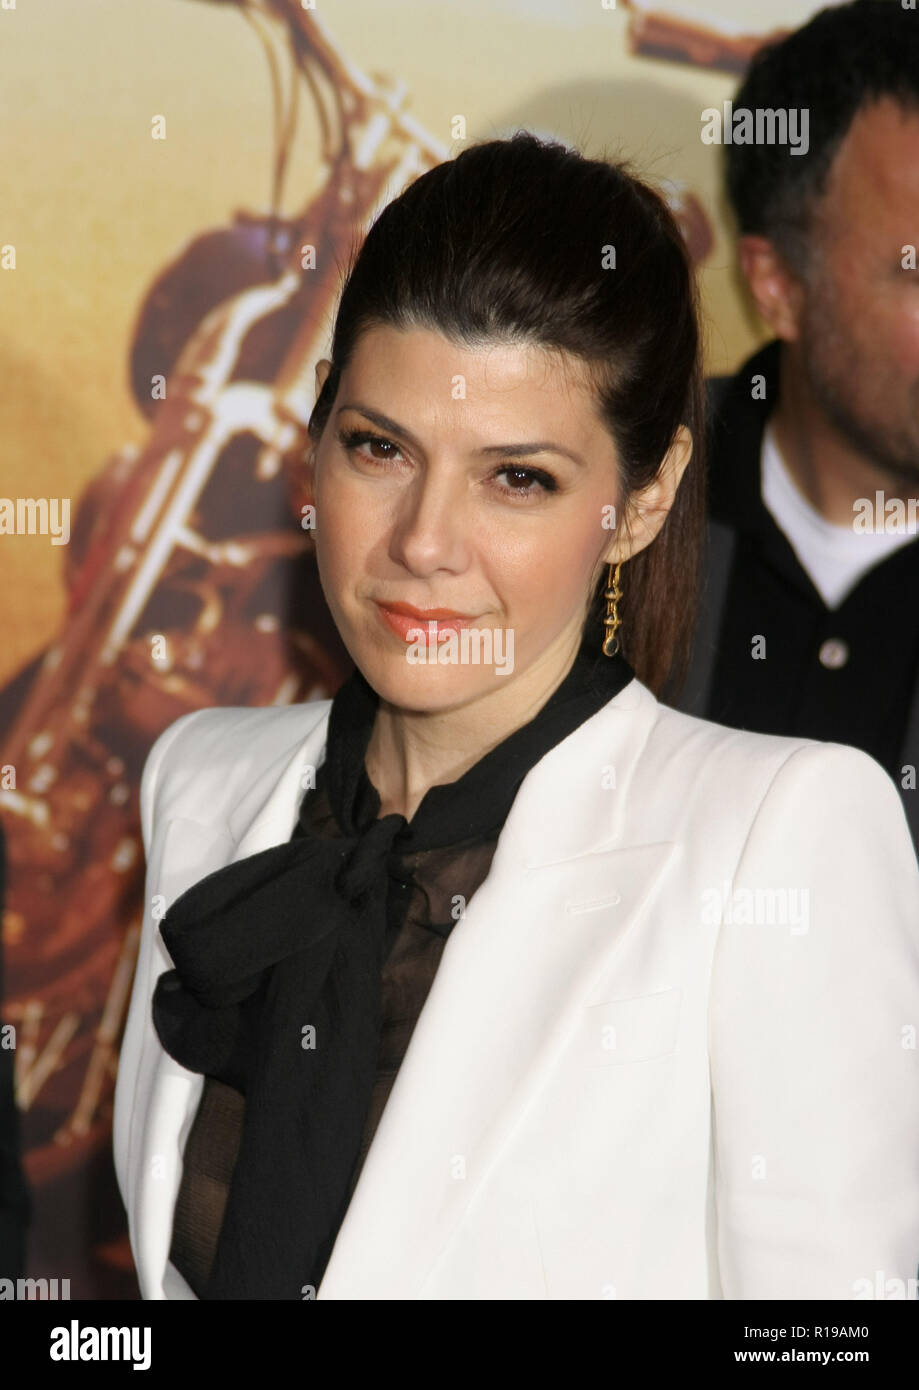 Marisa Tomei  02/27/07 'Wild Hogs'premiere  @ El Capitan Theatre, Hollywood Photo by Ima Kuroda/wHNW / PictureLux  (February 27, 2007) - Stock Image